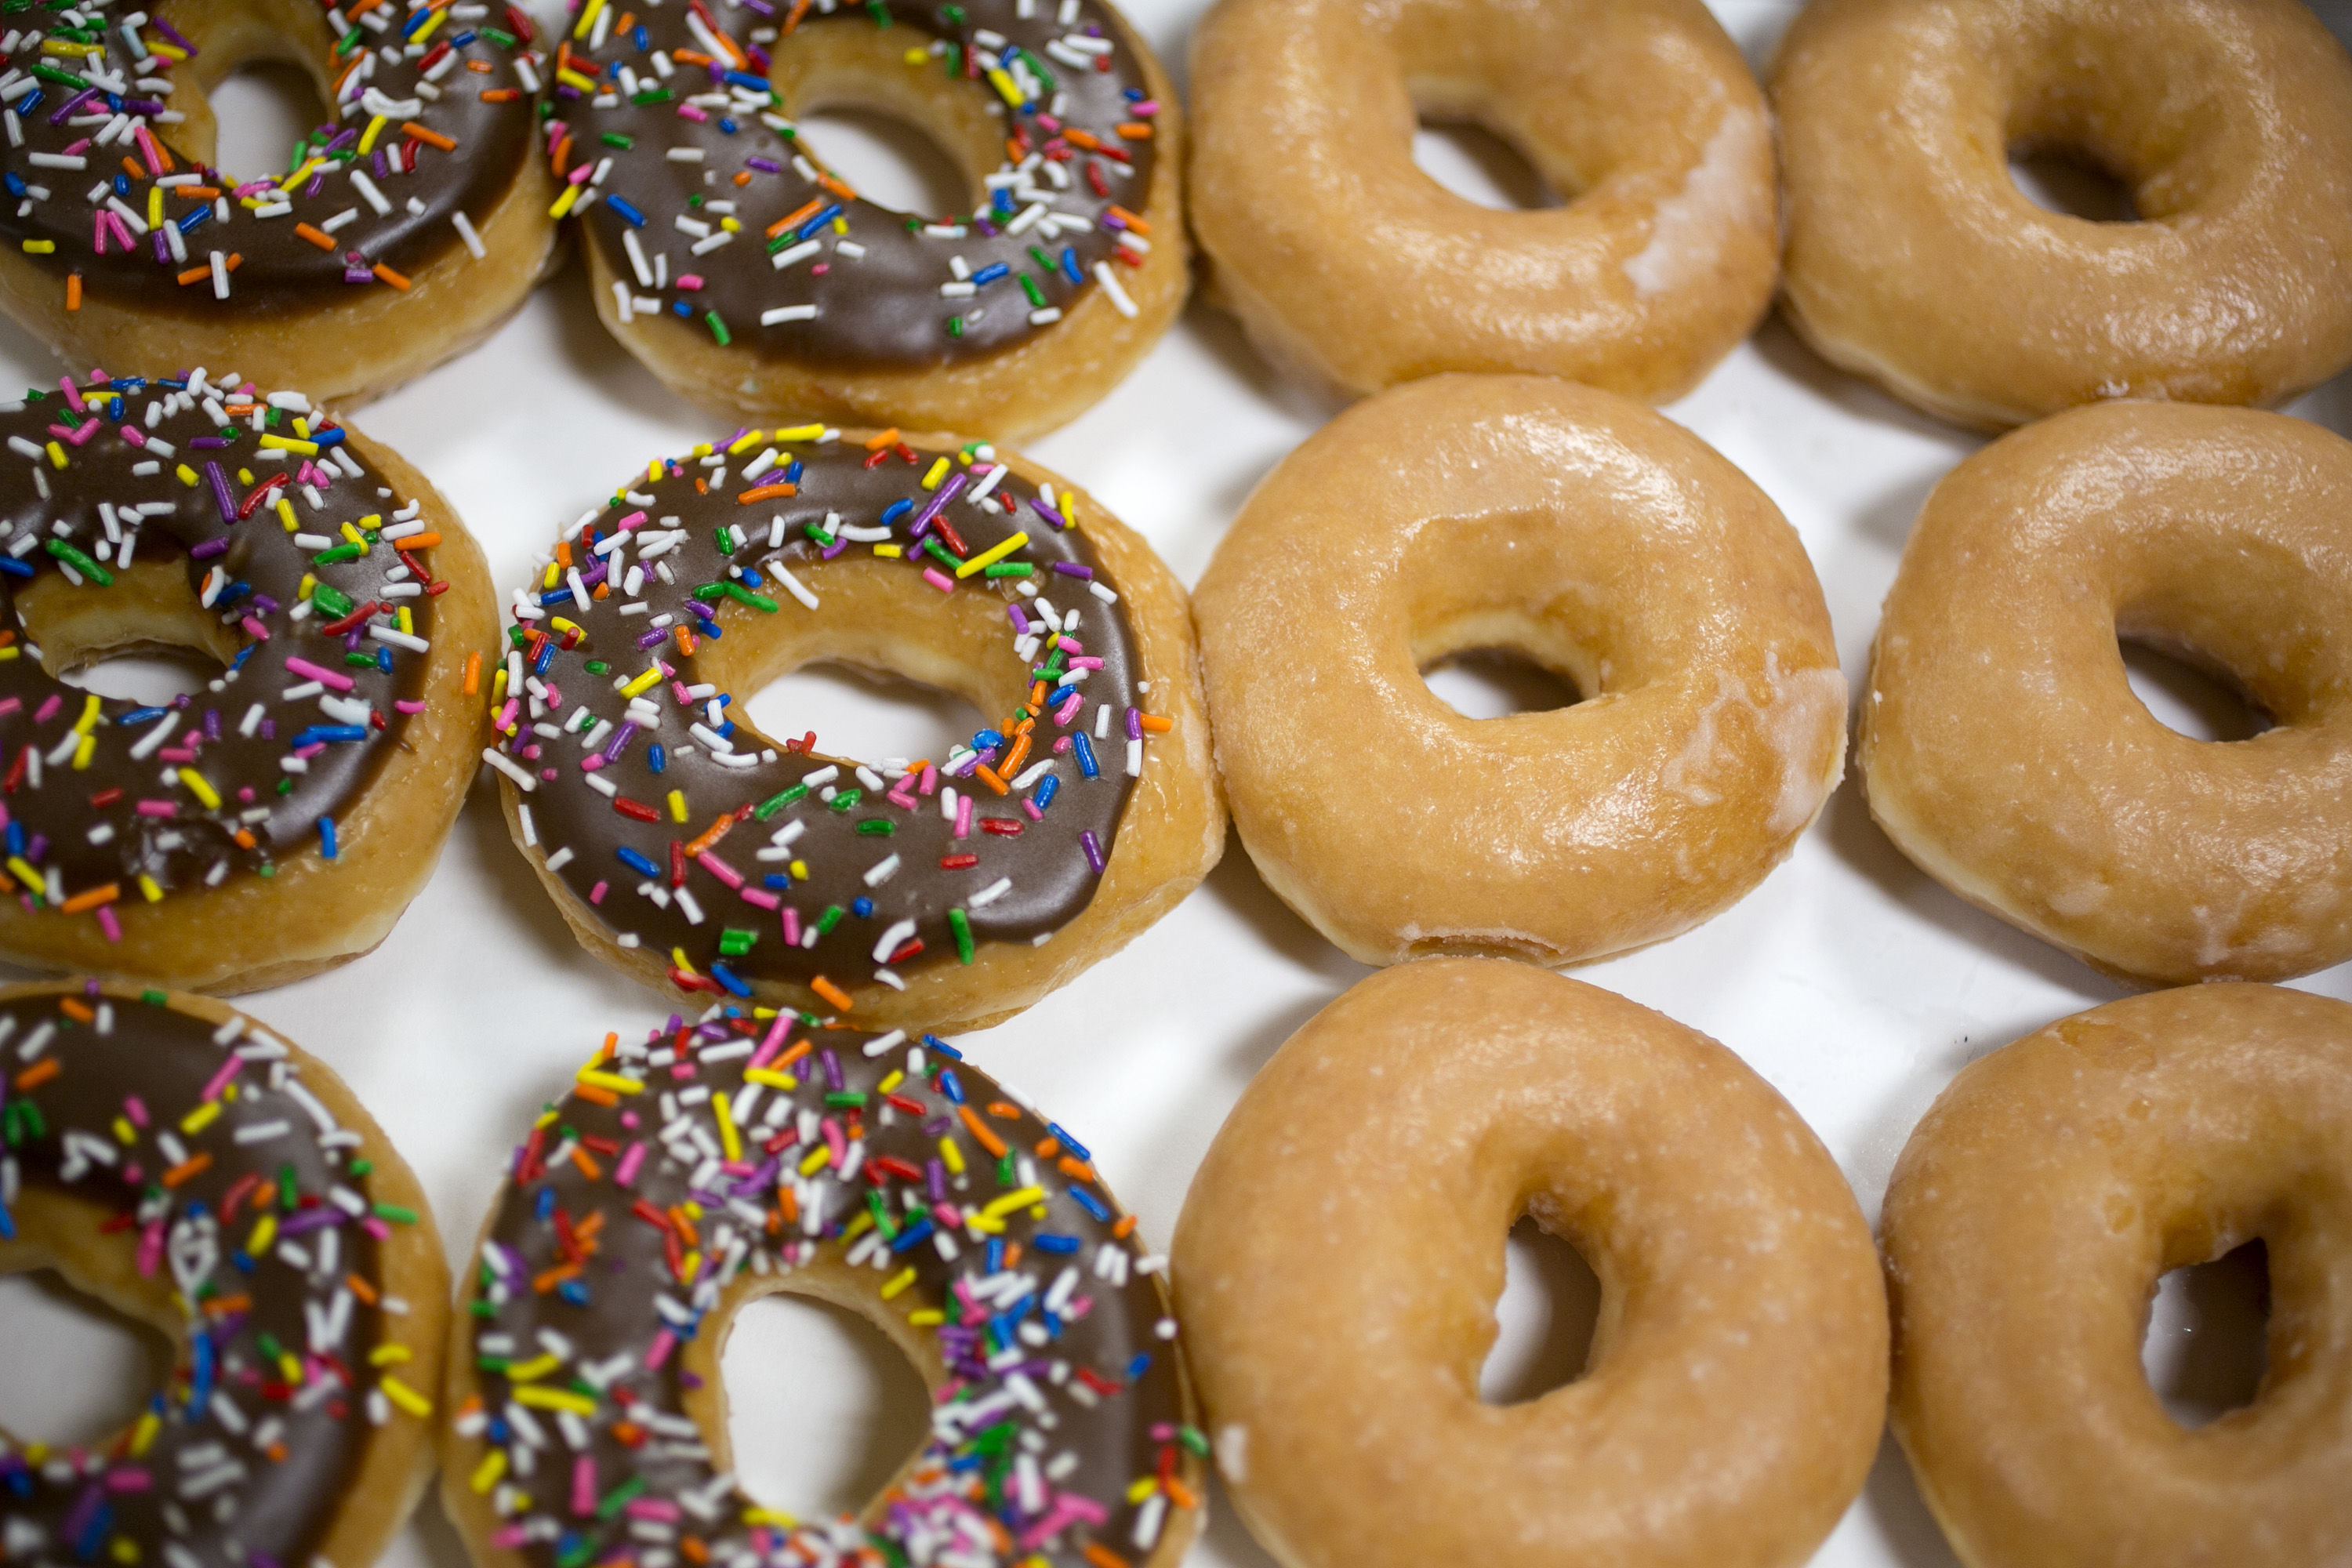 You Can Get a Free Krispy Kreme Donut on Halloween. Here's How